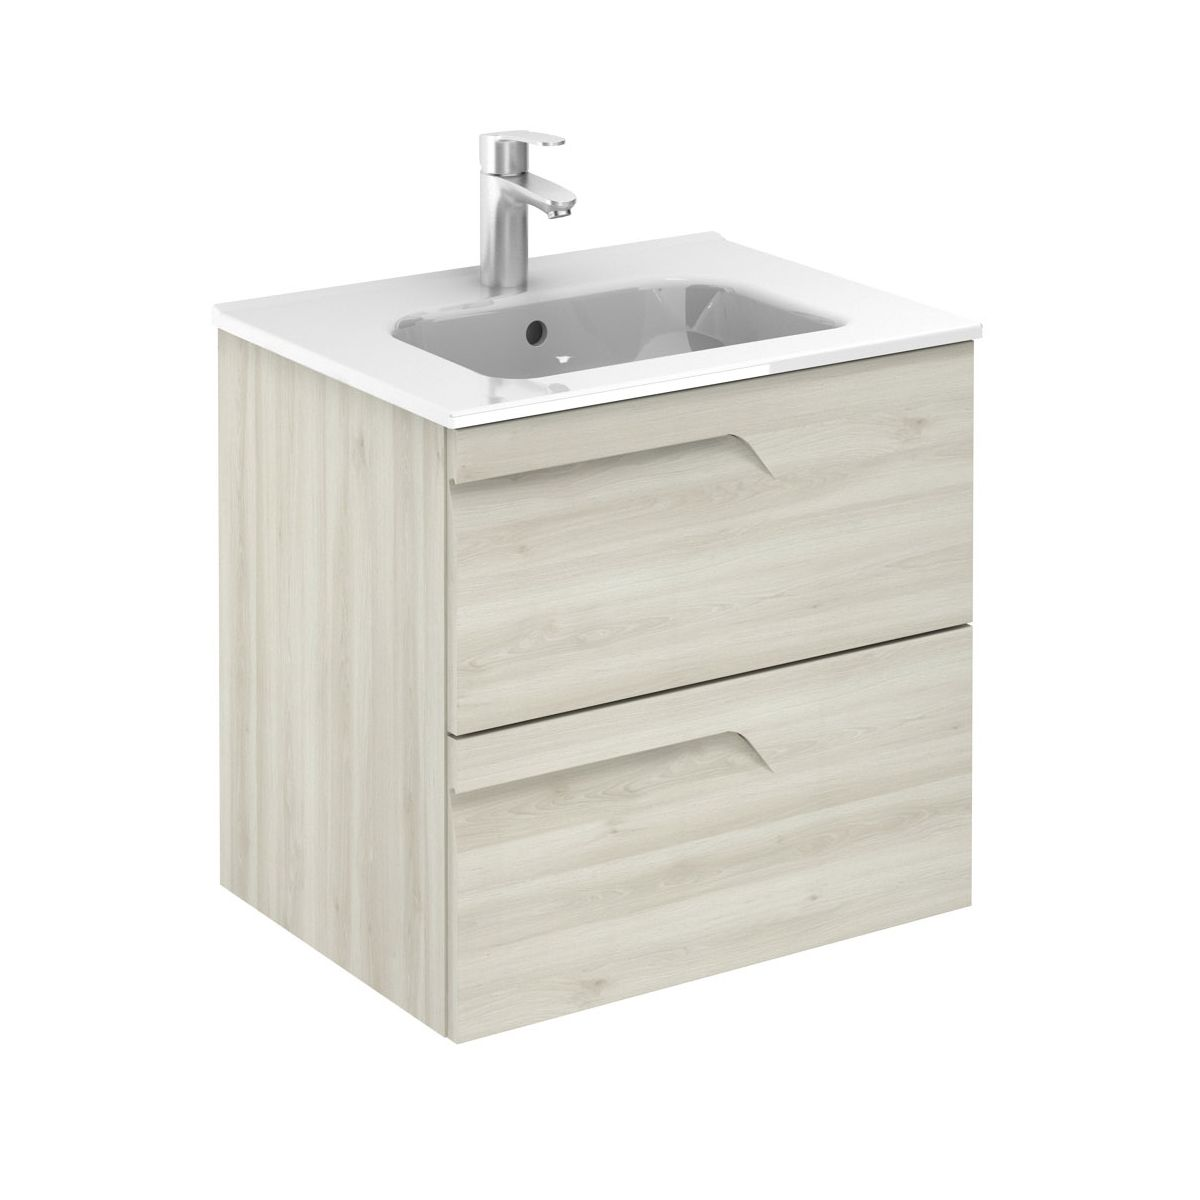 Frontline Vitale Light Oak Slimline Wall Mounted Vanity Unit 600mm